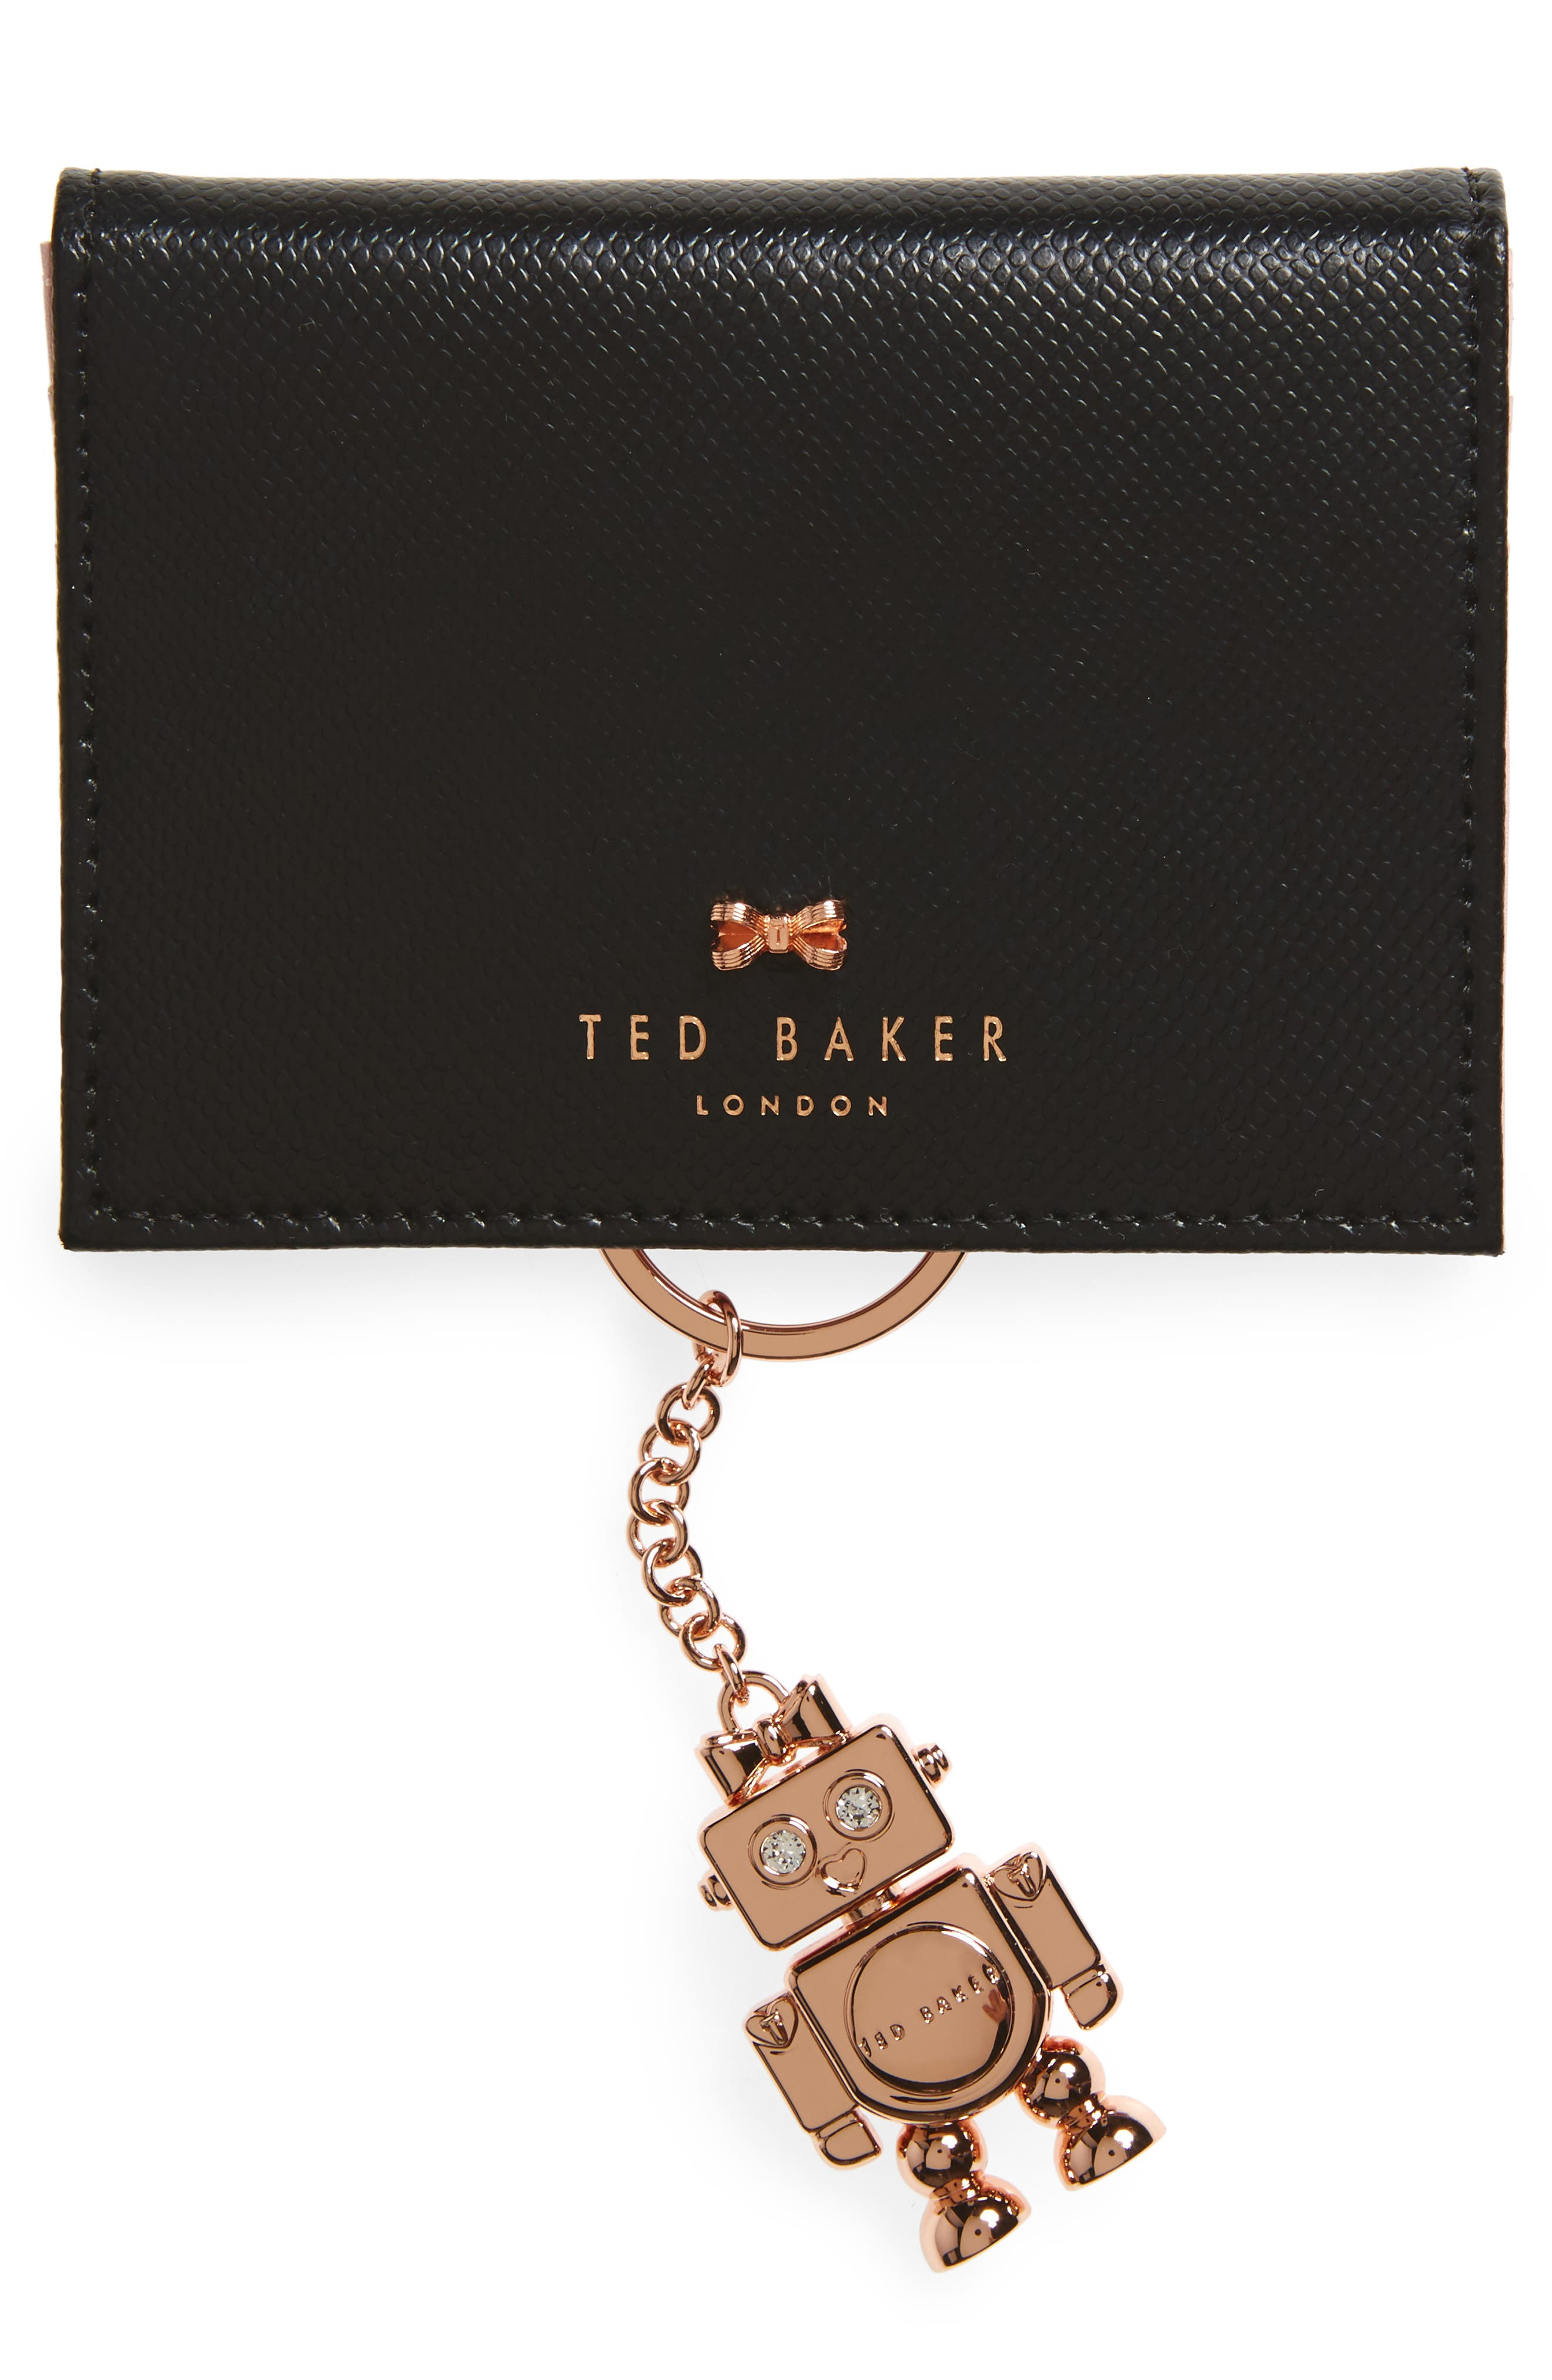 Ted Baker London Leather Card Case with Robot Key Chain